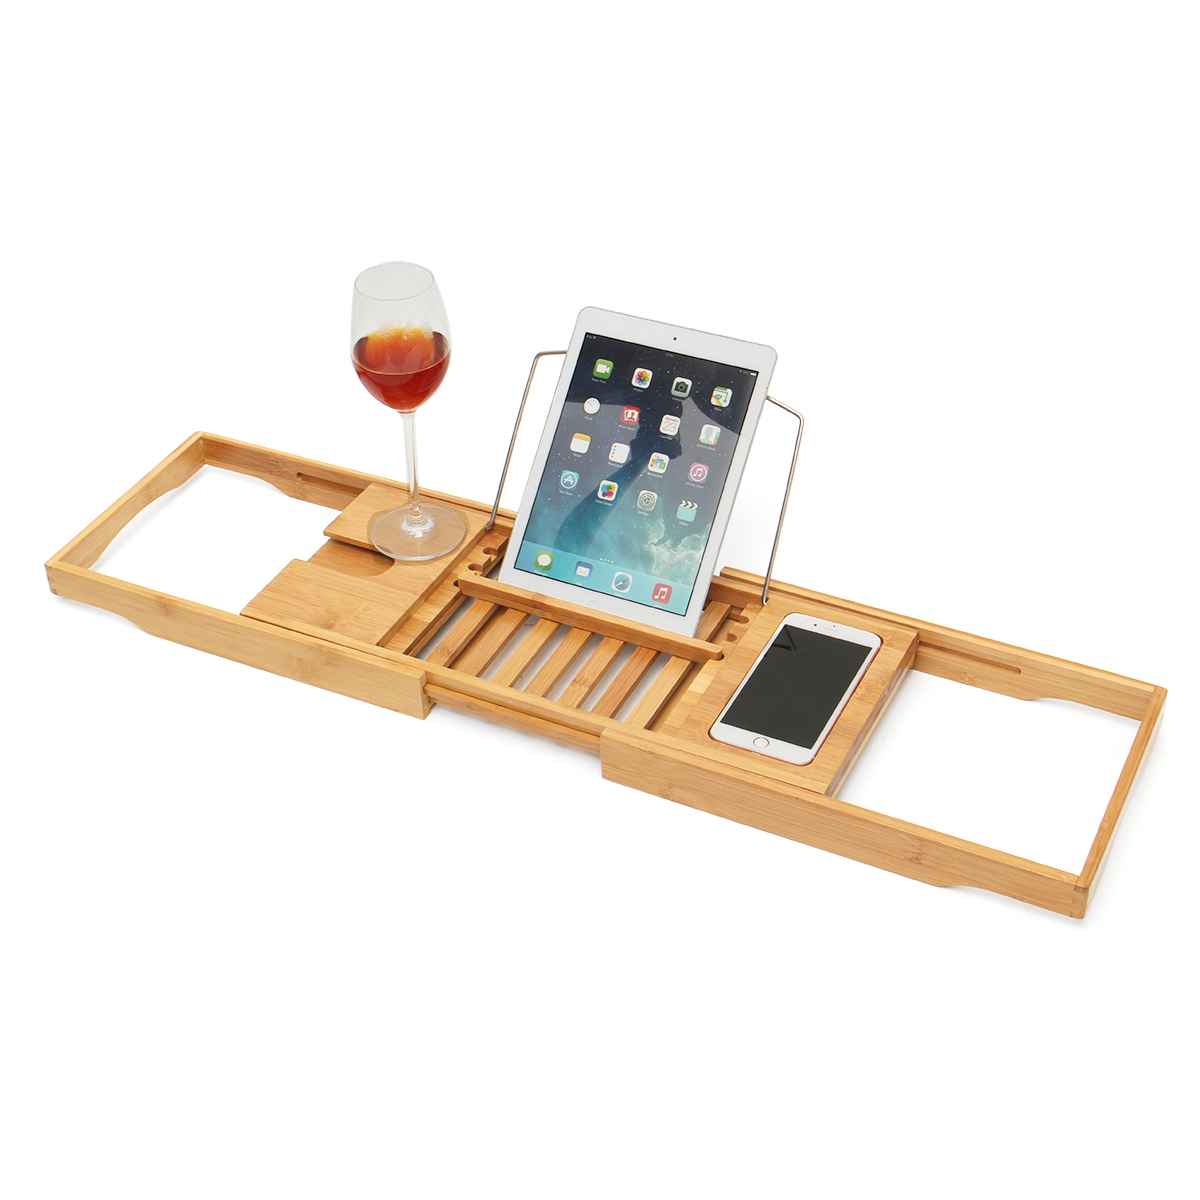 Luxury Bathroom Bamboo Bath Shelf Bridge Tub Caddy Tray Rack Wine Holder Bathtub Rack Support Storage